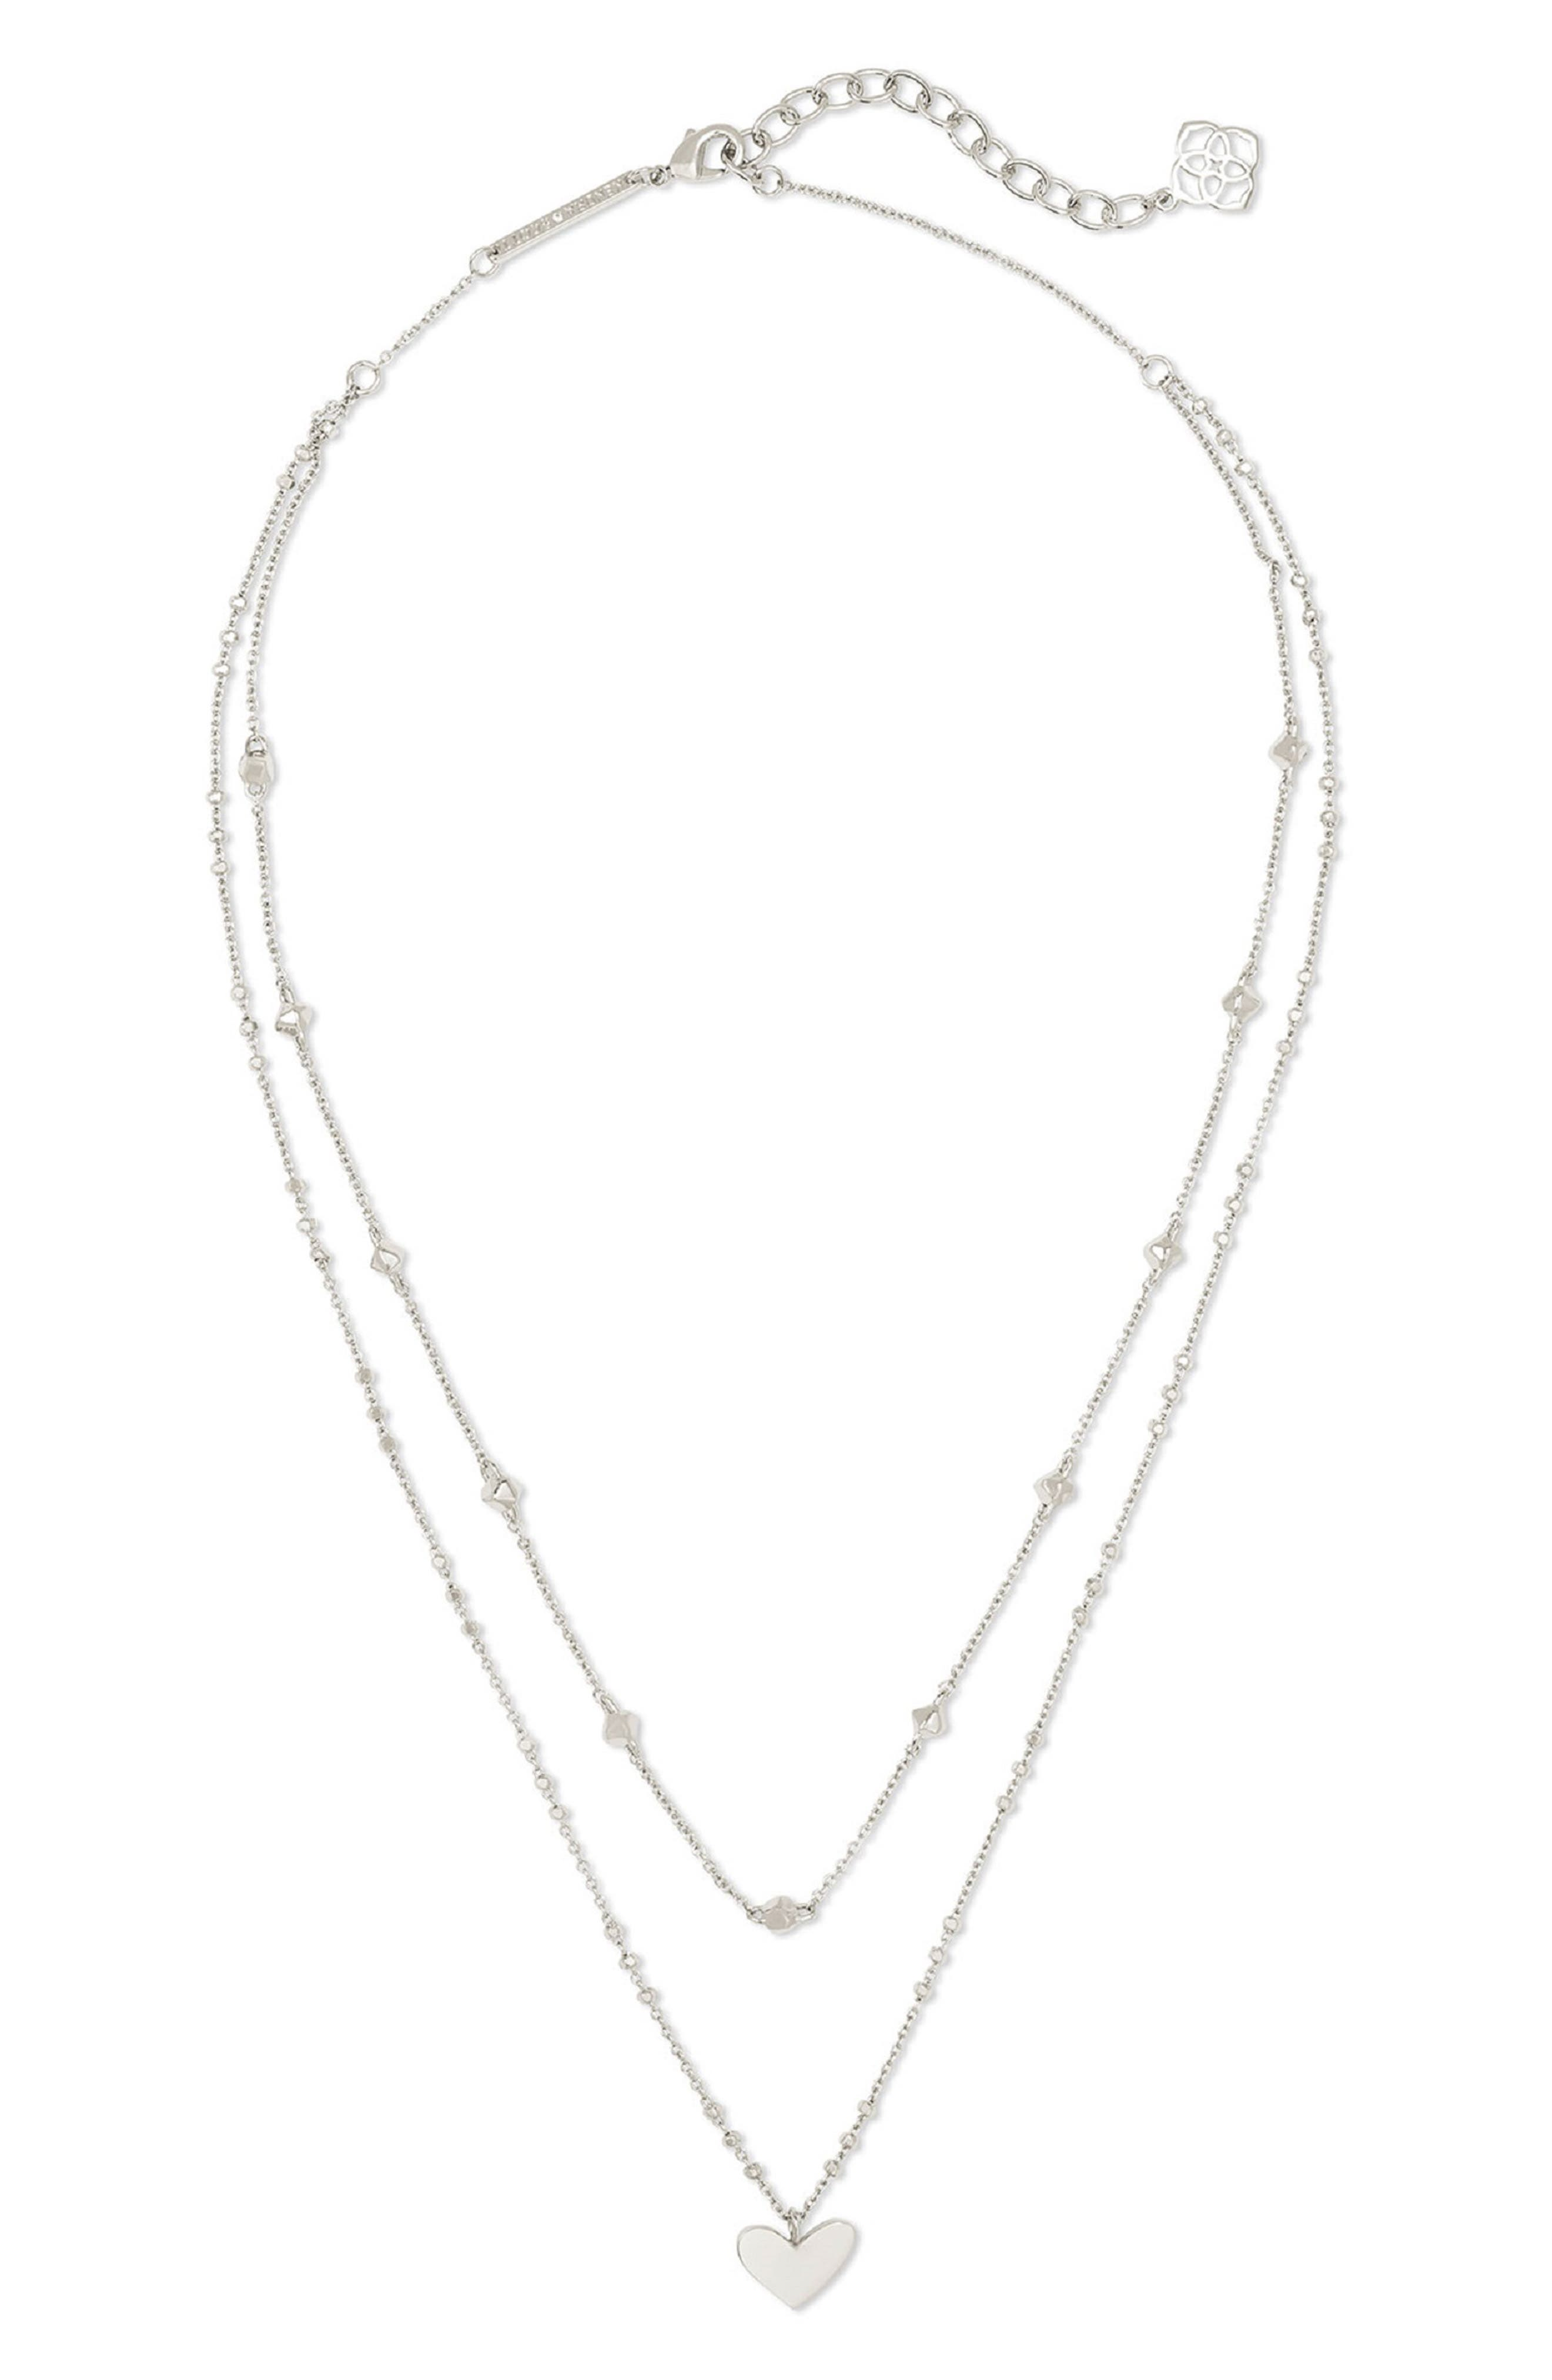 50/% off SPECIAL Silver Layered Chain Necklace Silver Plated 3 Strand Layered Bib Necklace 18 19 20 inch